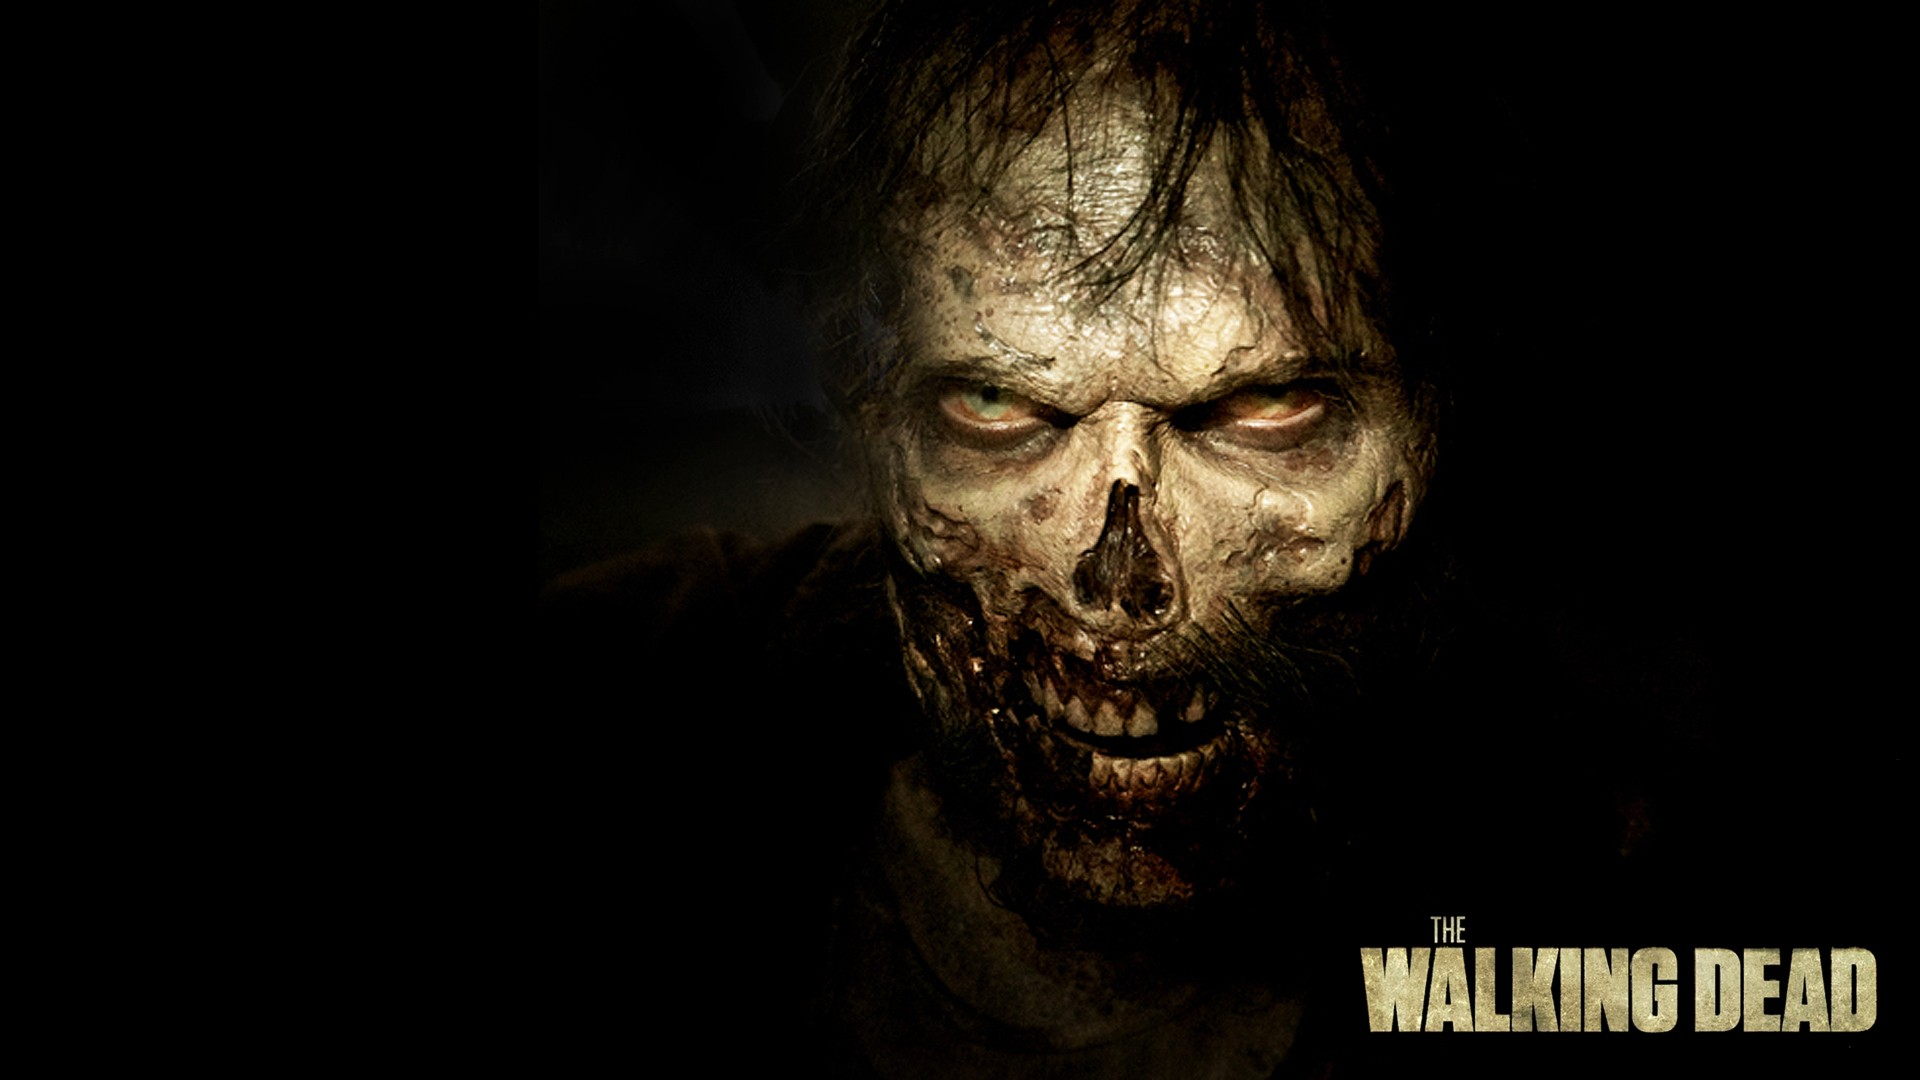 Hd wallpaper zombie -  Zombies Wallpaper Zombies Wallpaper